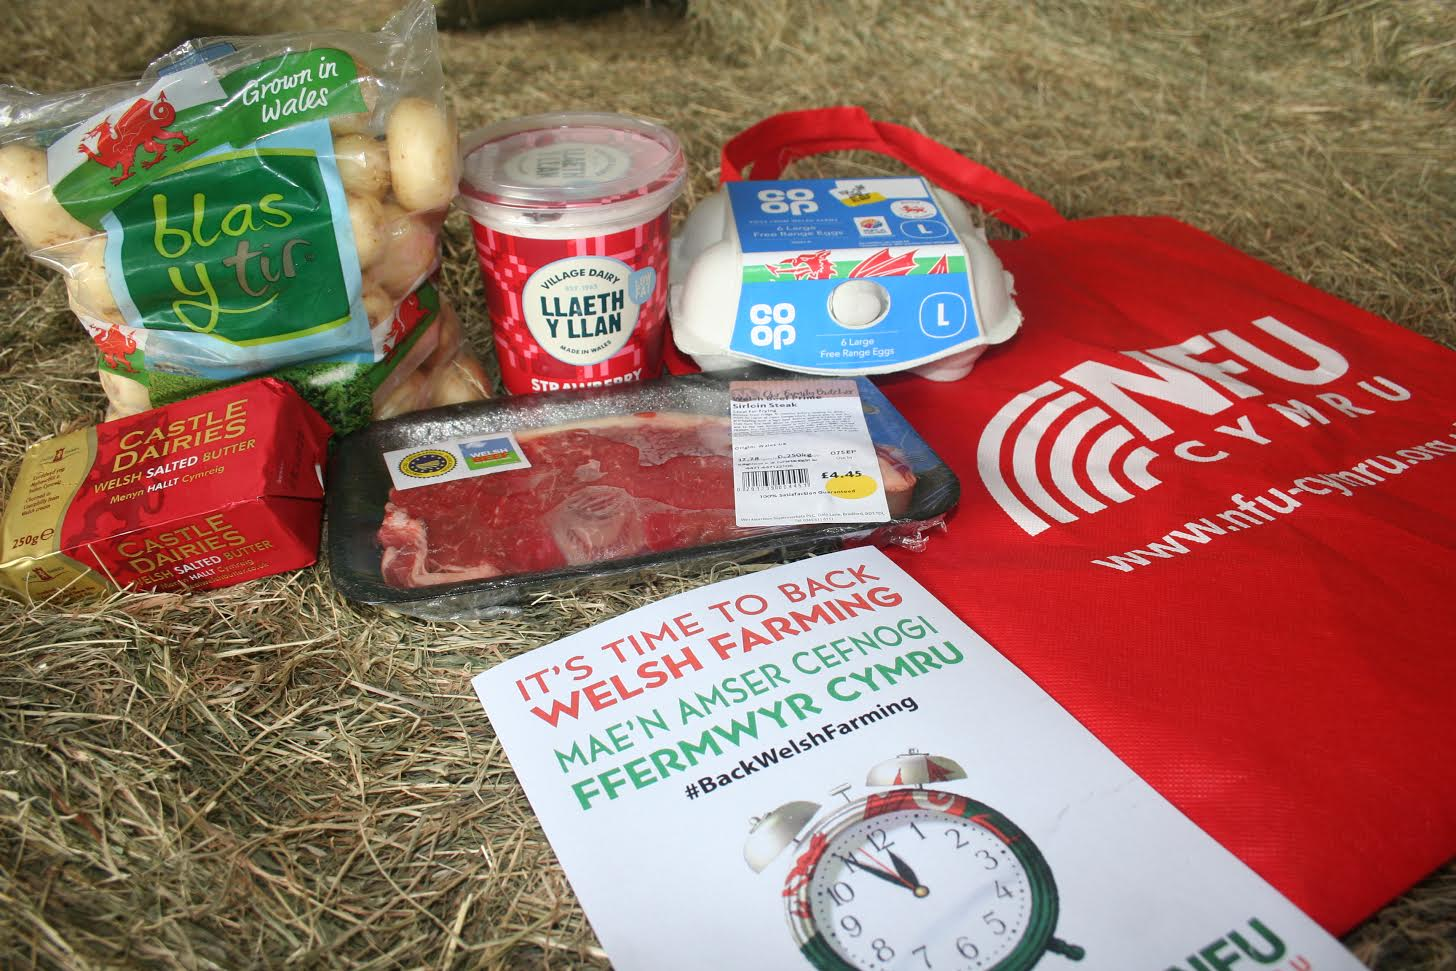 Farming union urges Welsh consumers to #Buy5 items of Welsh produce when shopping